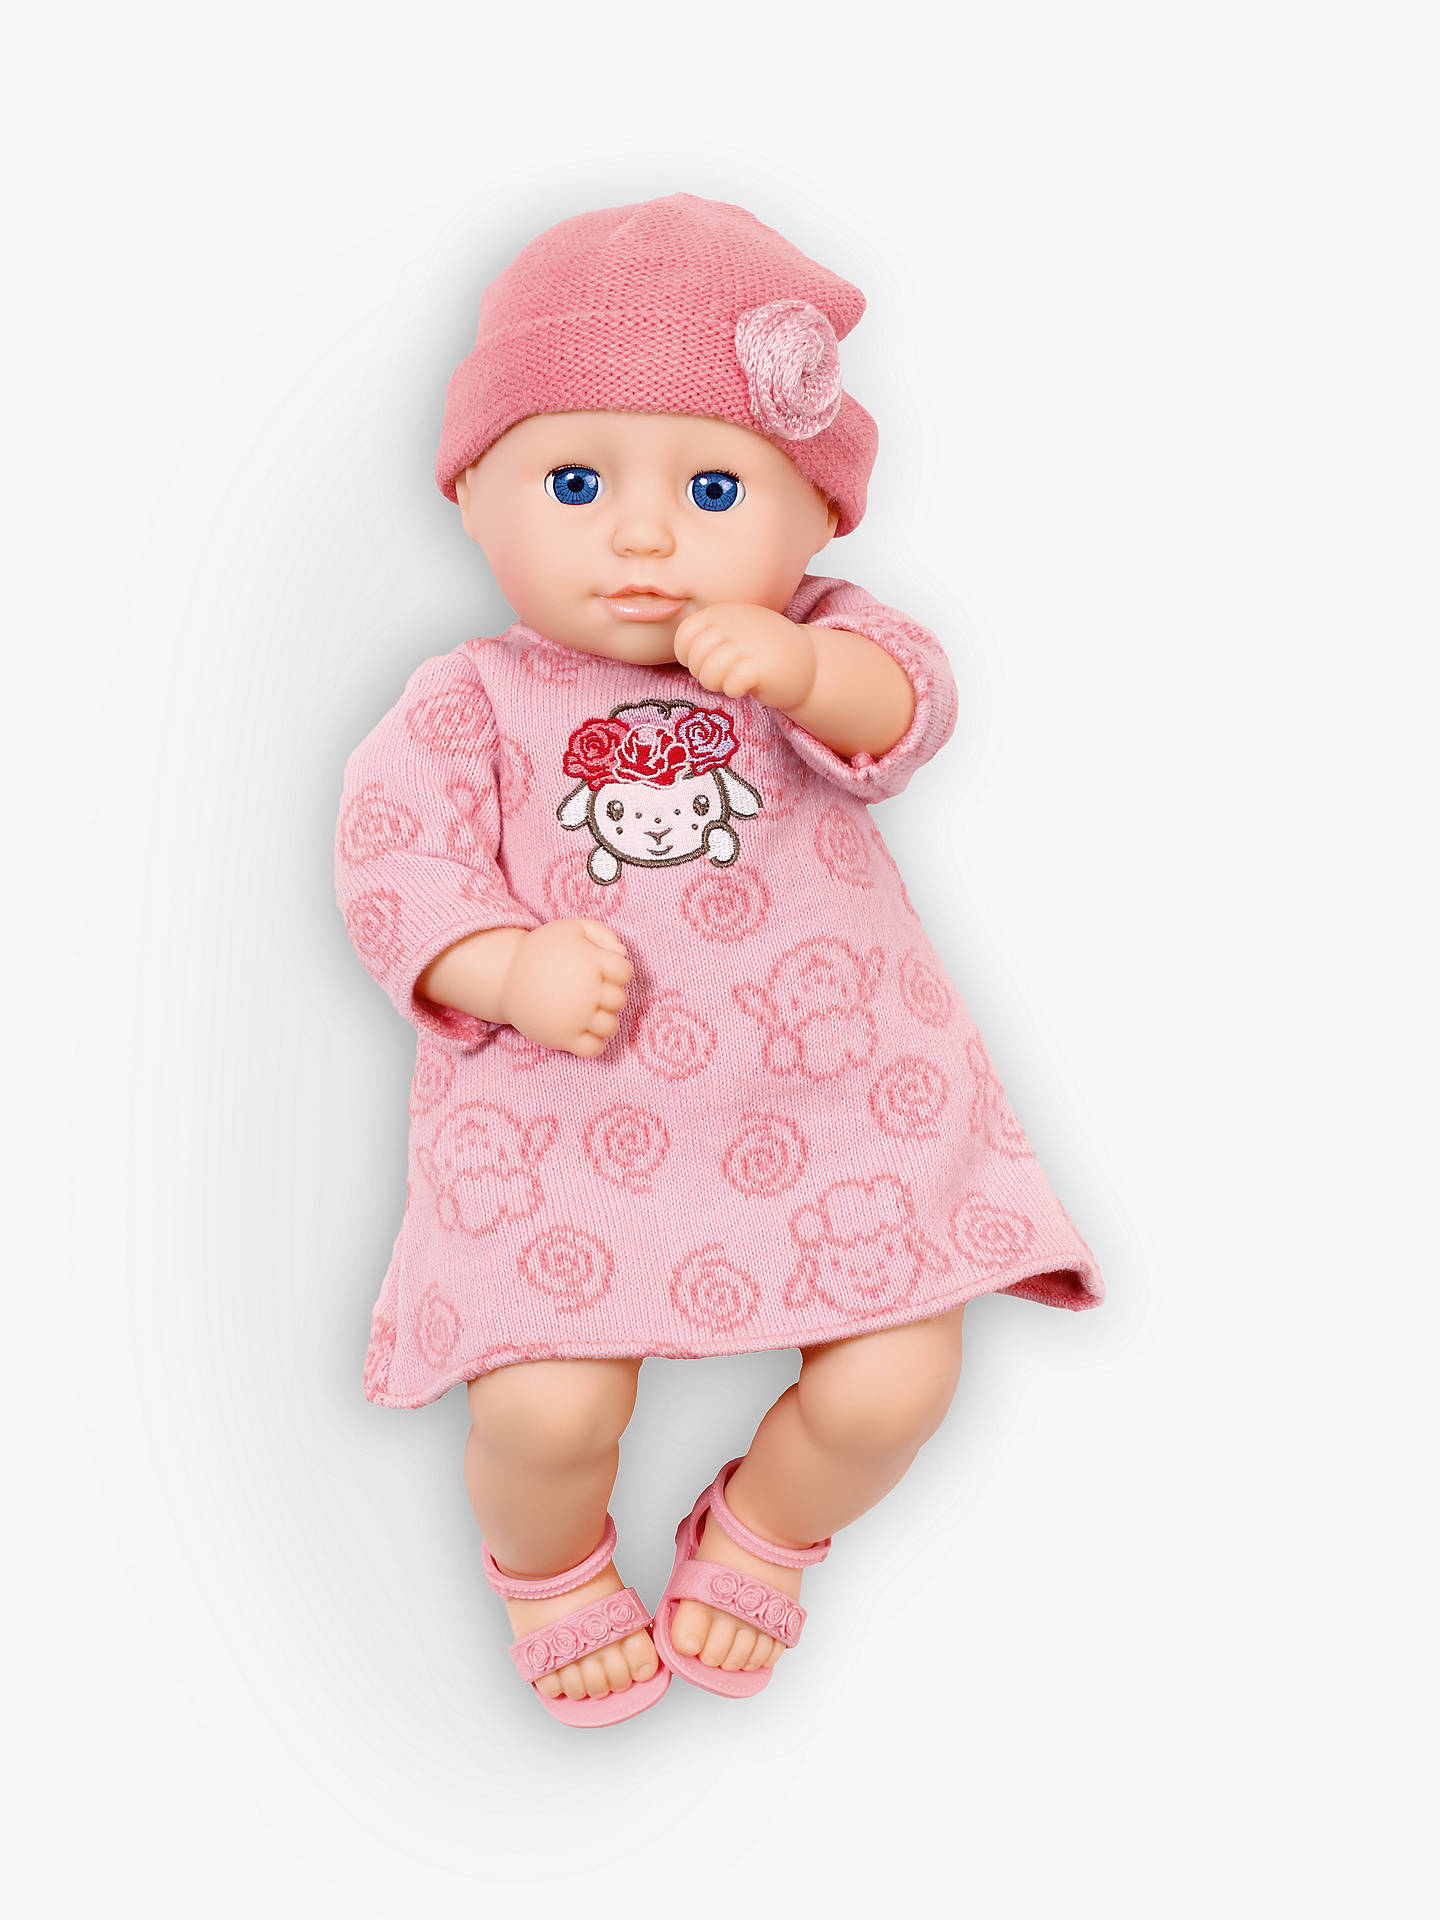 Knitted Dolls Clothes For Baby Annabell - Baby Cloths